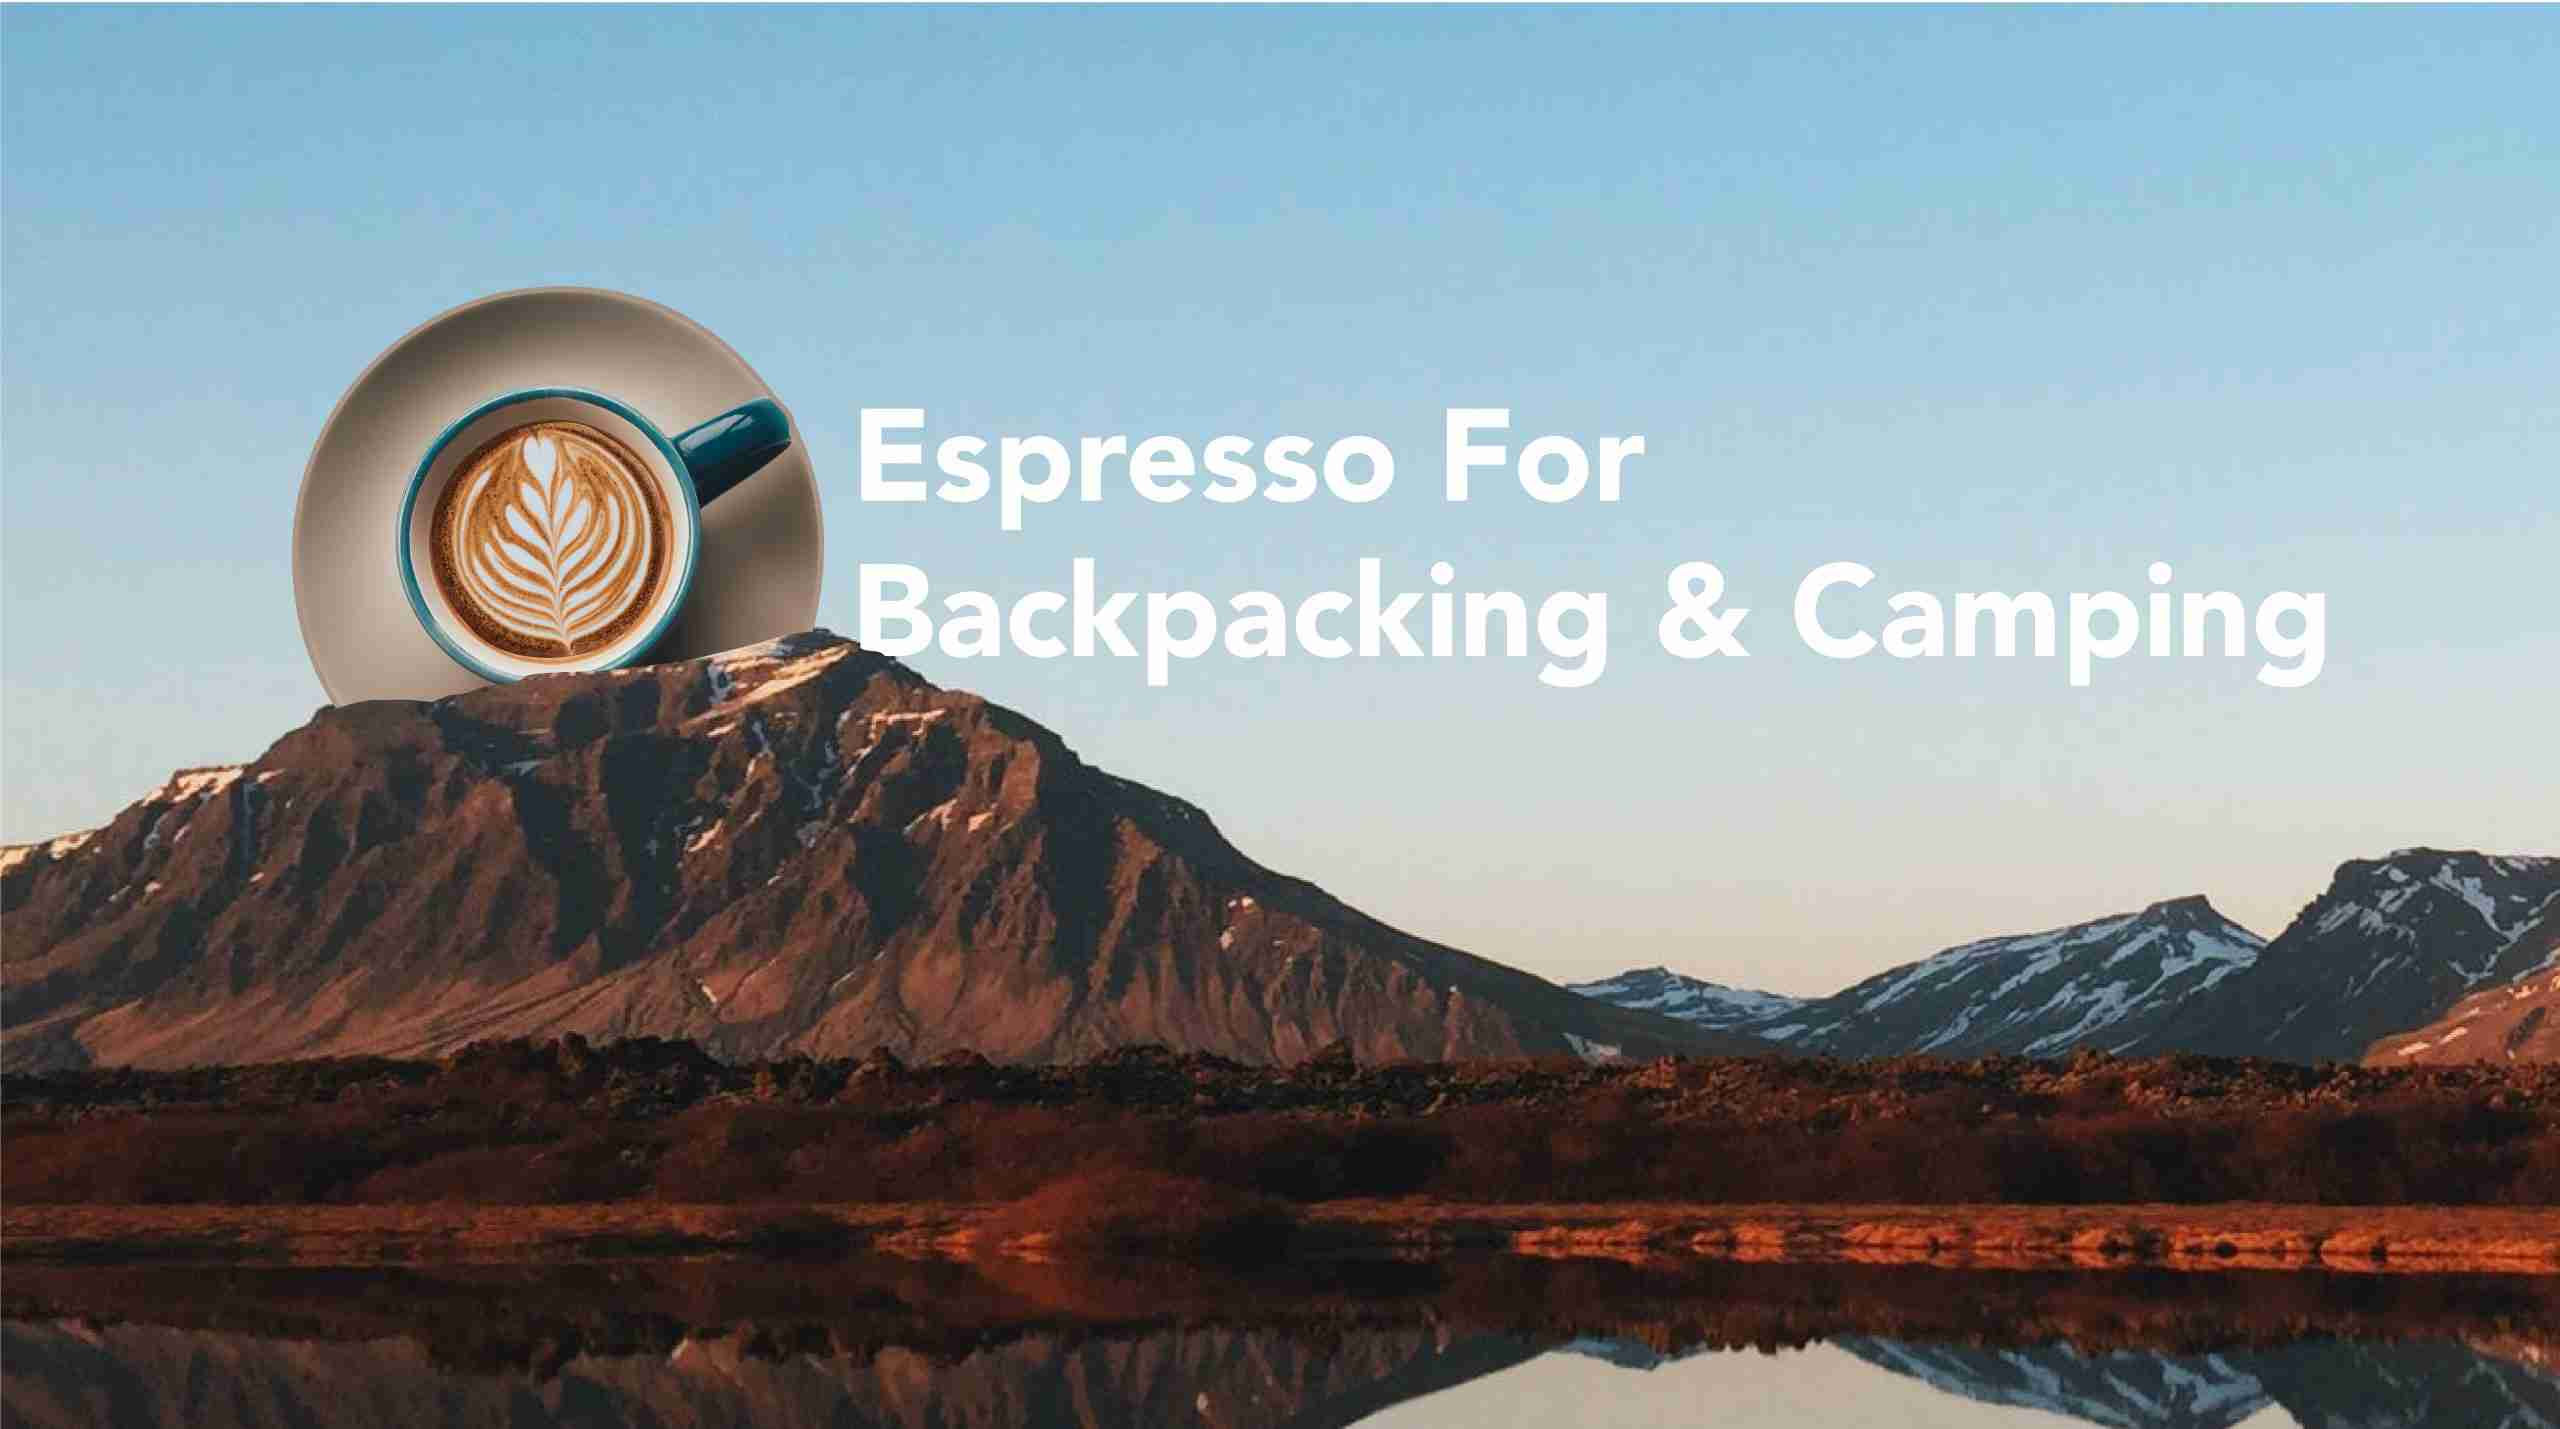 Portable Espresso Makers For Camping And Backpacking - Crux Range